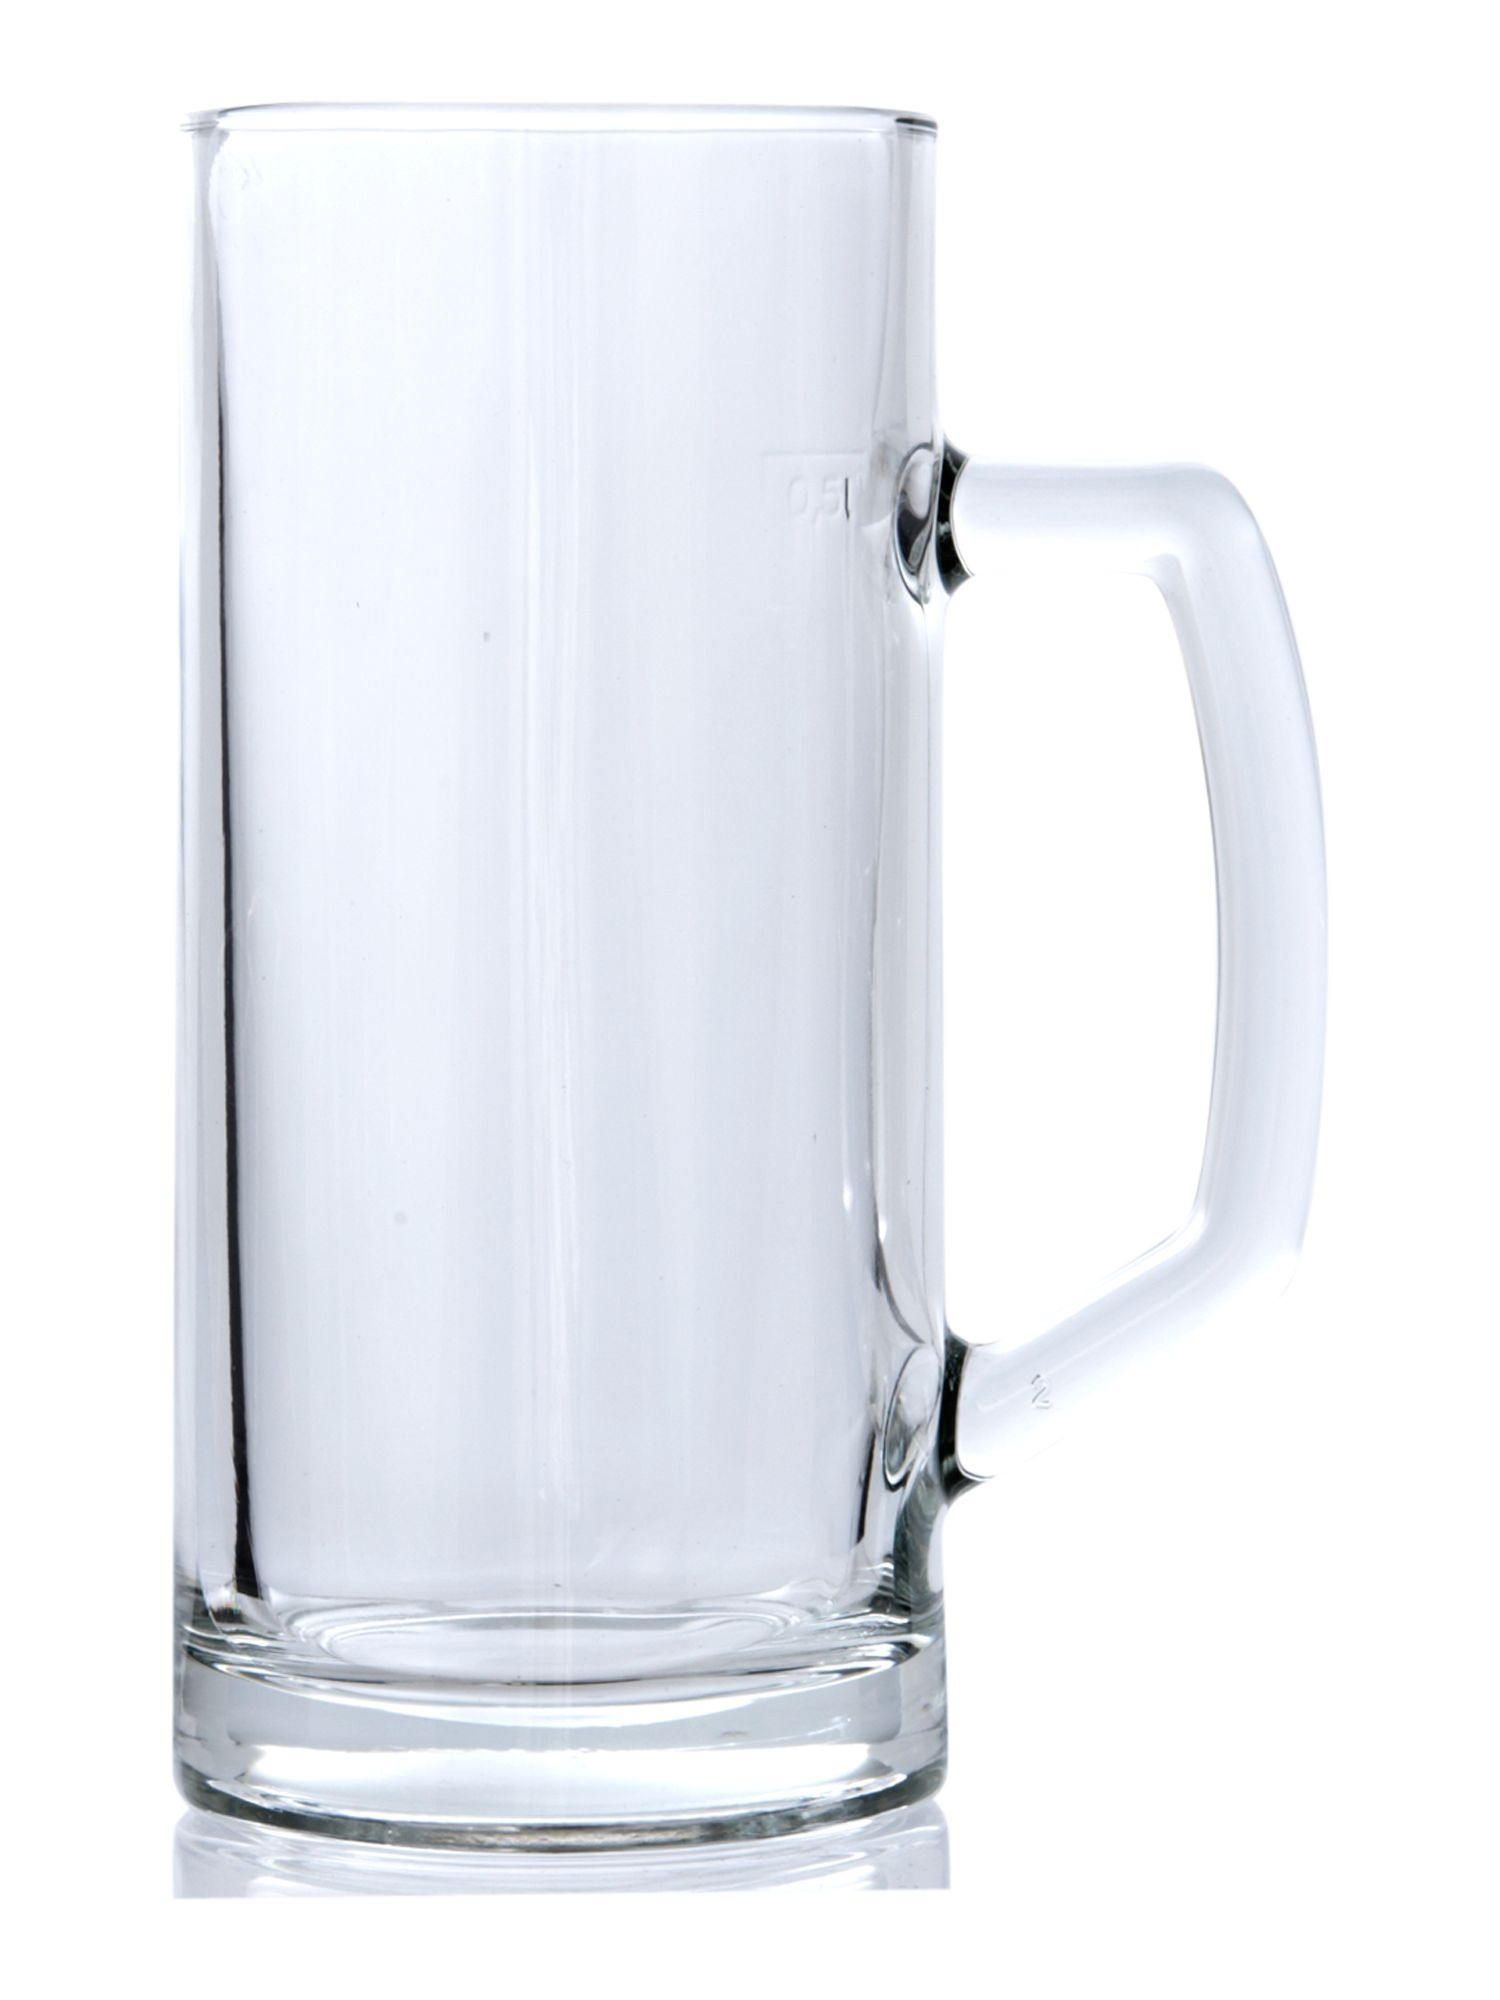 Handled beer mug